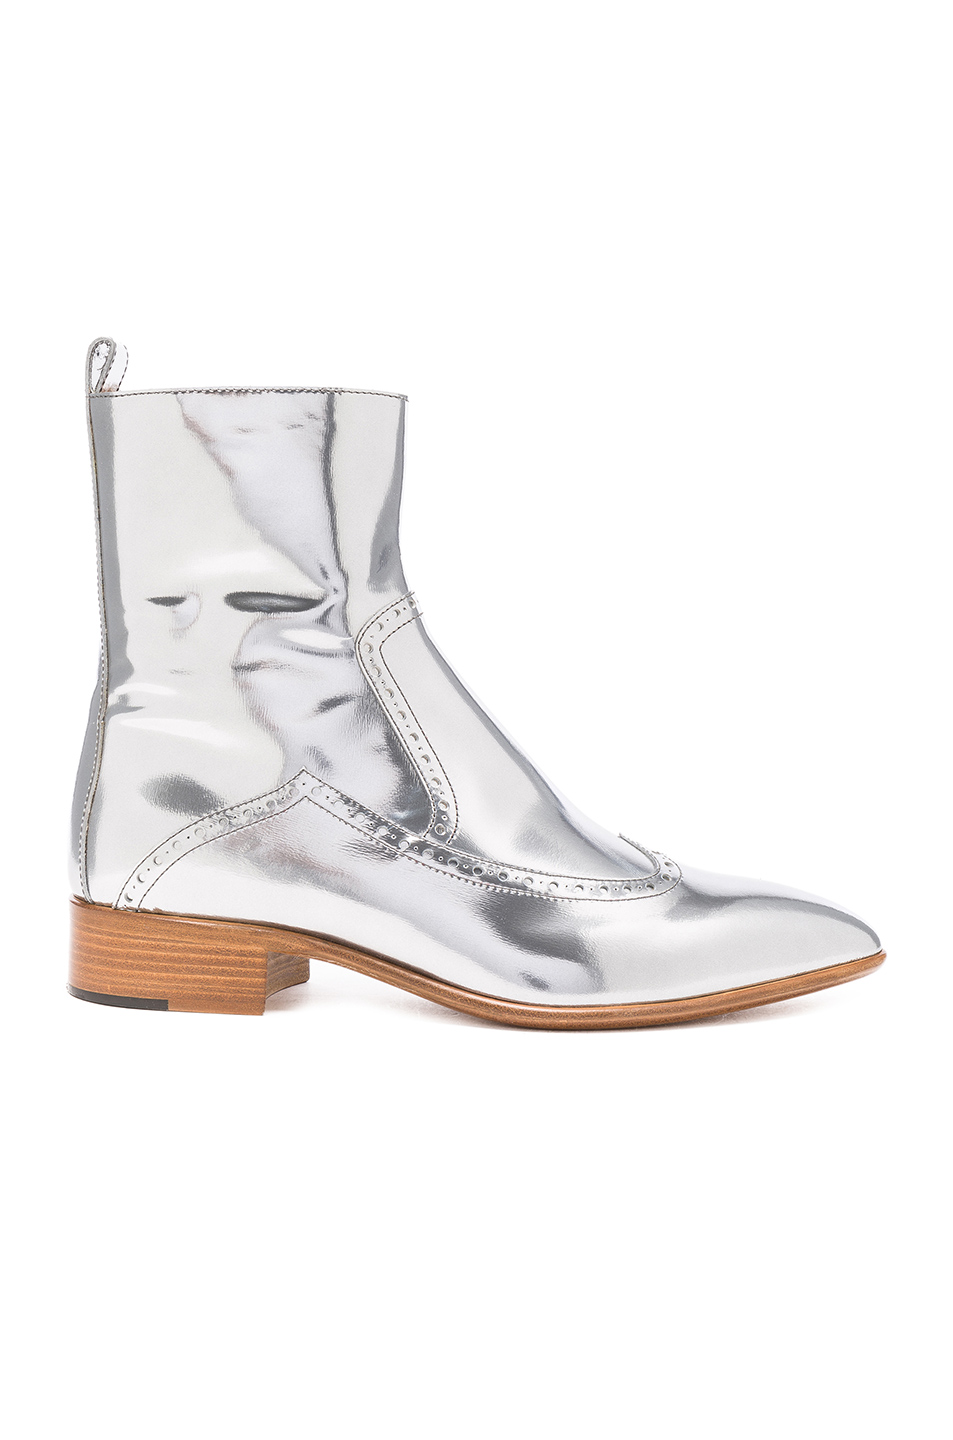 Maison Margiela Leather Ankle Boots in Metallics